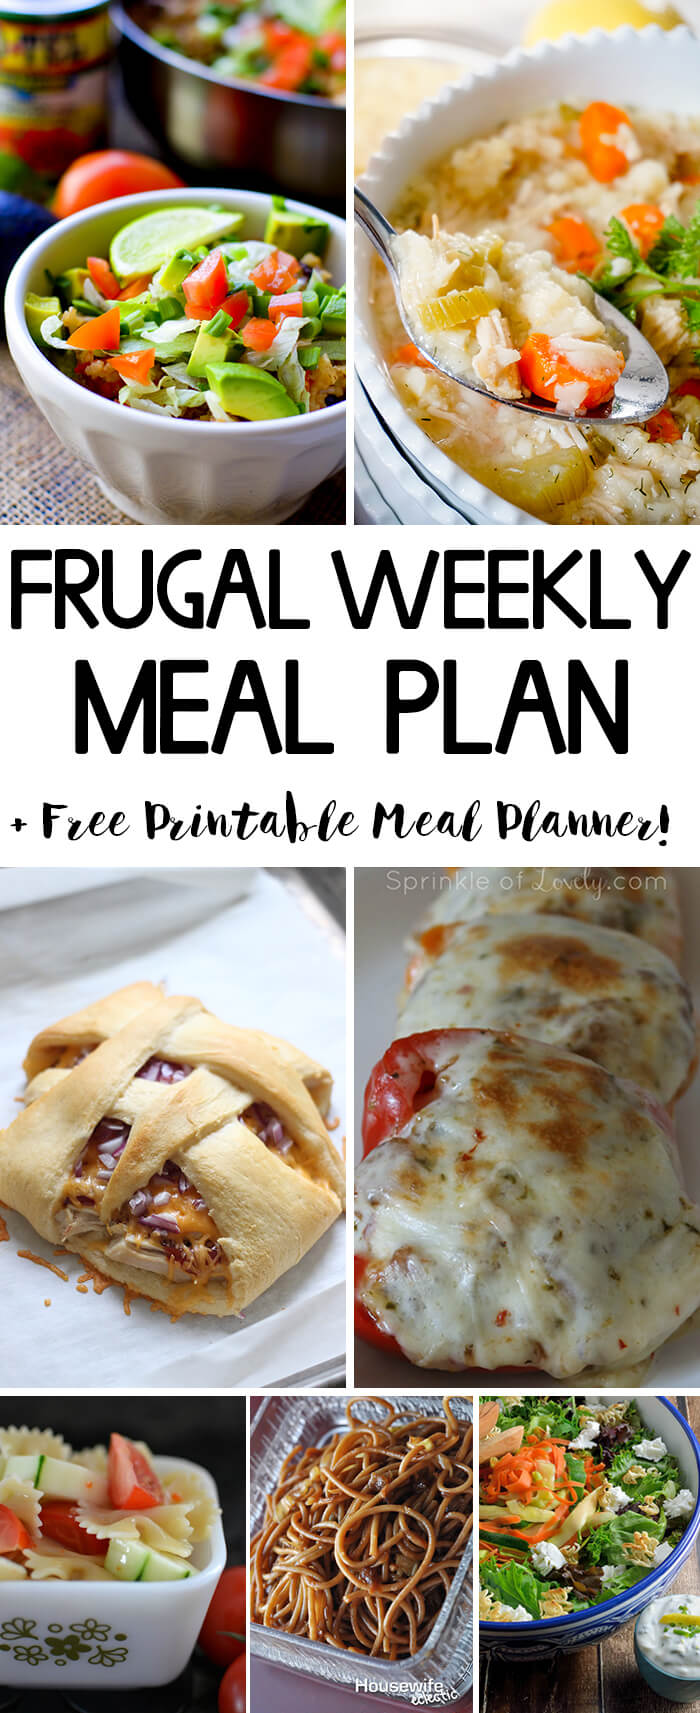 Frugal Weekly Meal Plan Week 3